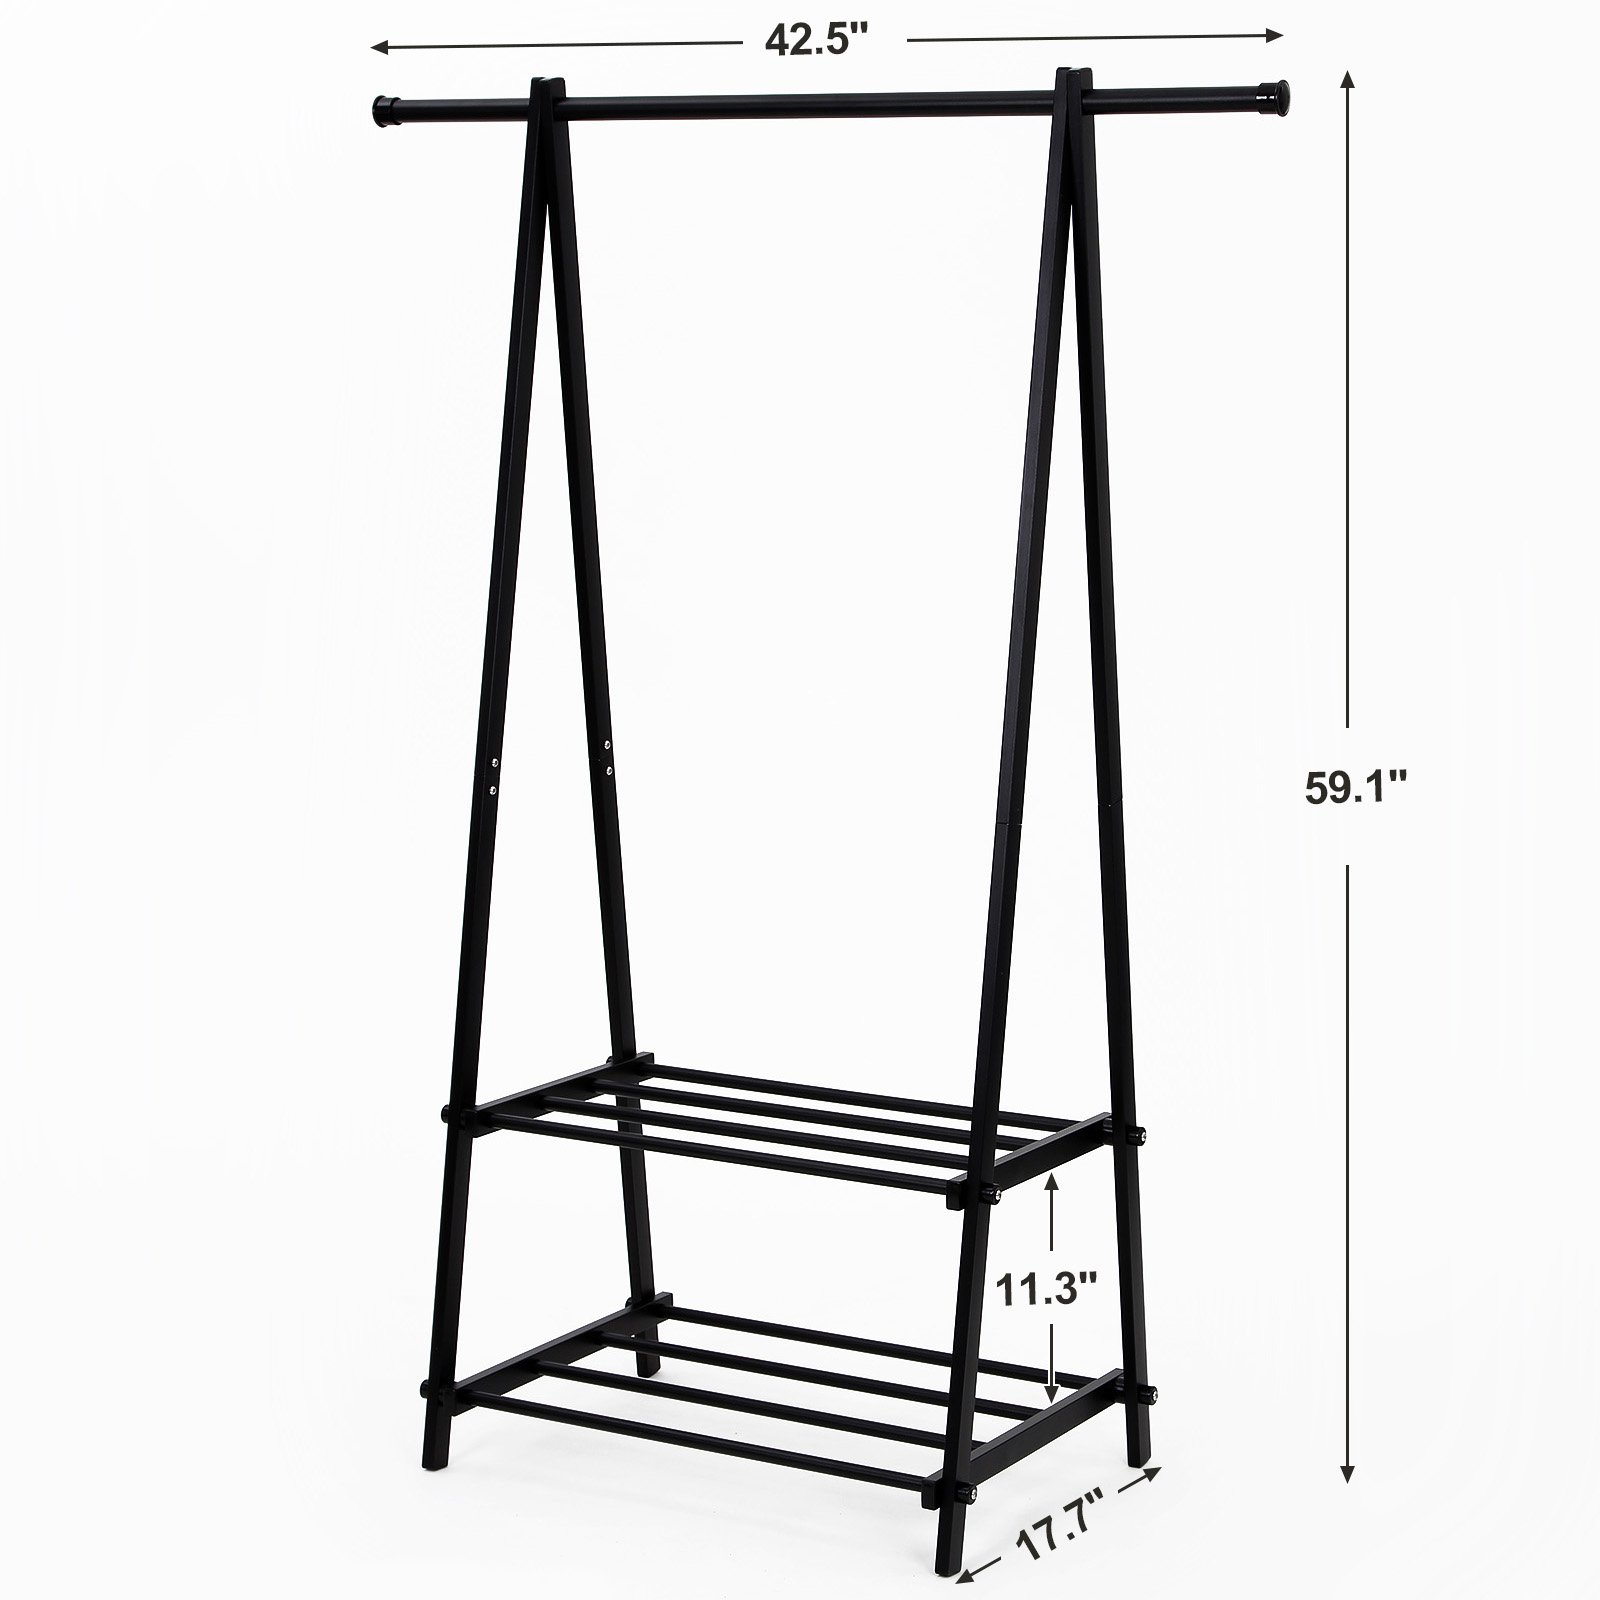 SONGMICS Clothing Garment Rack with 2-Tire Shelf for Shoes Clothes Storage Black URCR22B by SONGMICS (Image #4)